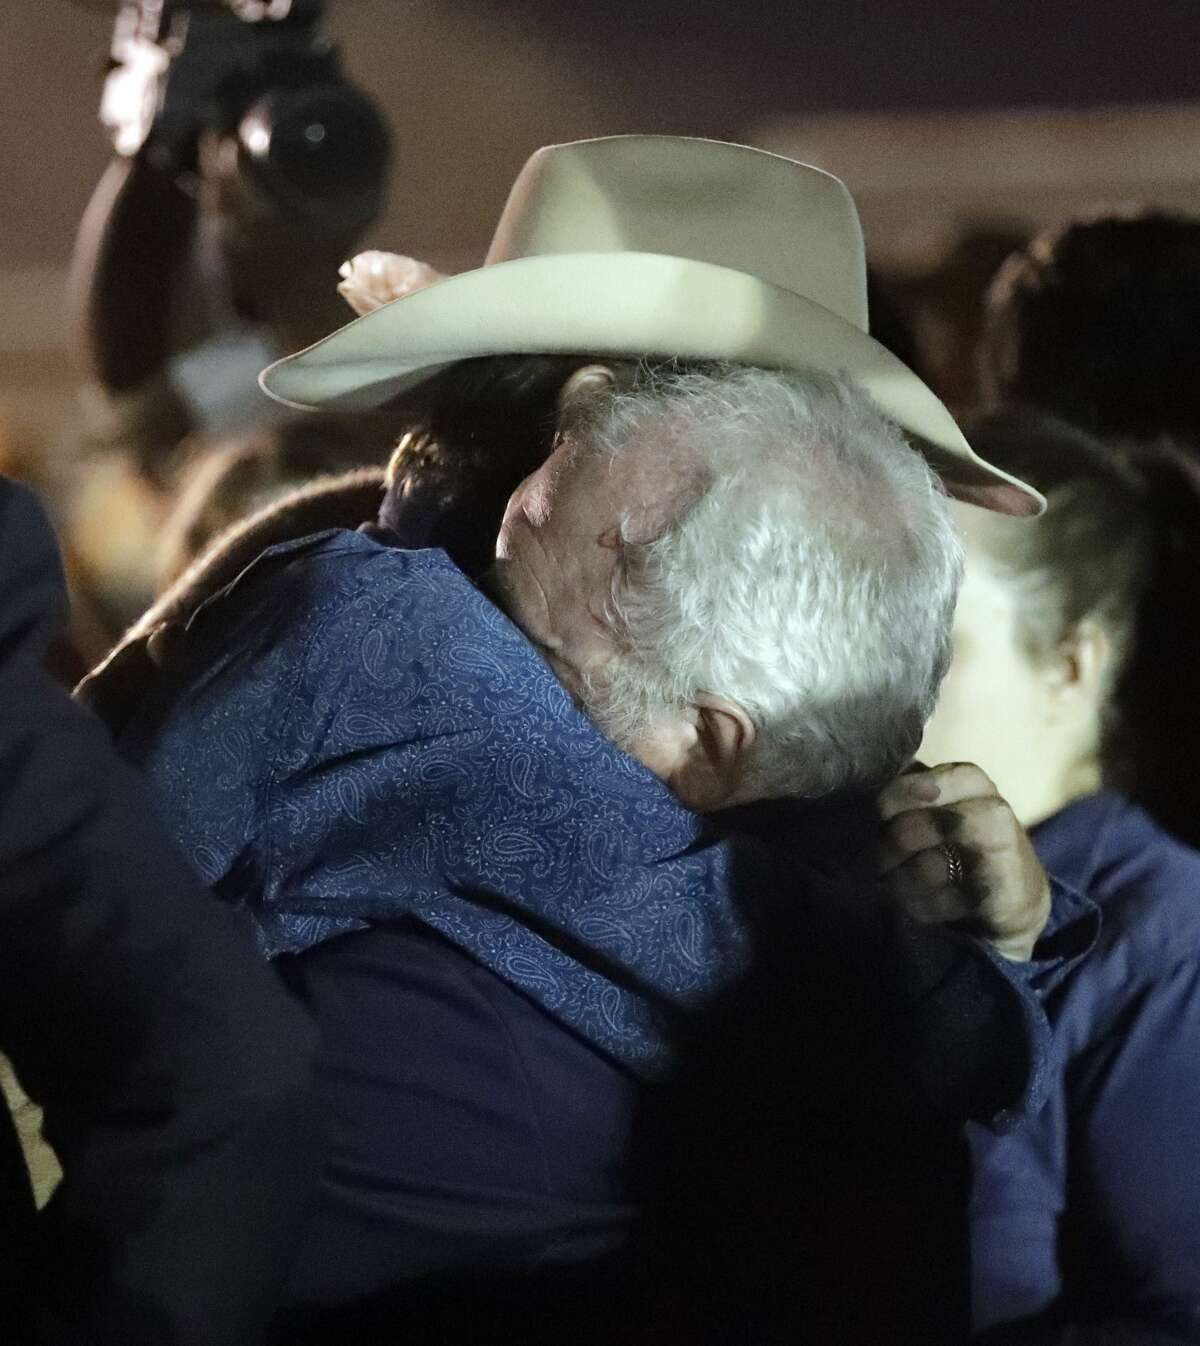 Stephen Willeford, right, hugs Johnnie Langendorff during a vigil for the victims of the First Baptist Church shooting Monday, Nov. 6, 2017, in Sutherland Springs, Texas. Willeford shot the suspect and Langendorff drove the truck while chasing Devin Patrick Kelley. Kelley opened fire inside the church in the small South Texas community on Sunday, killing more than two dozen and injuring others. (AP Photo/David J. Phillip)